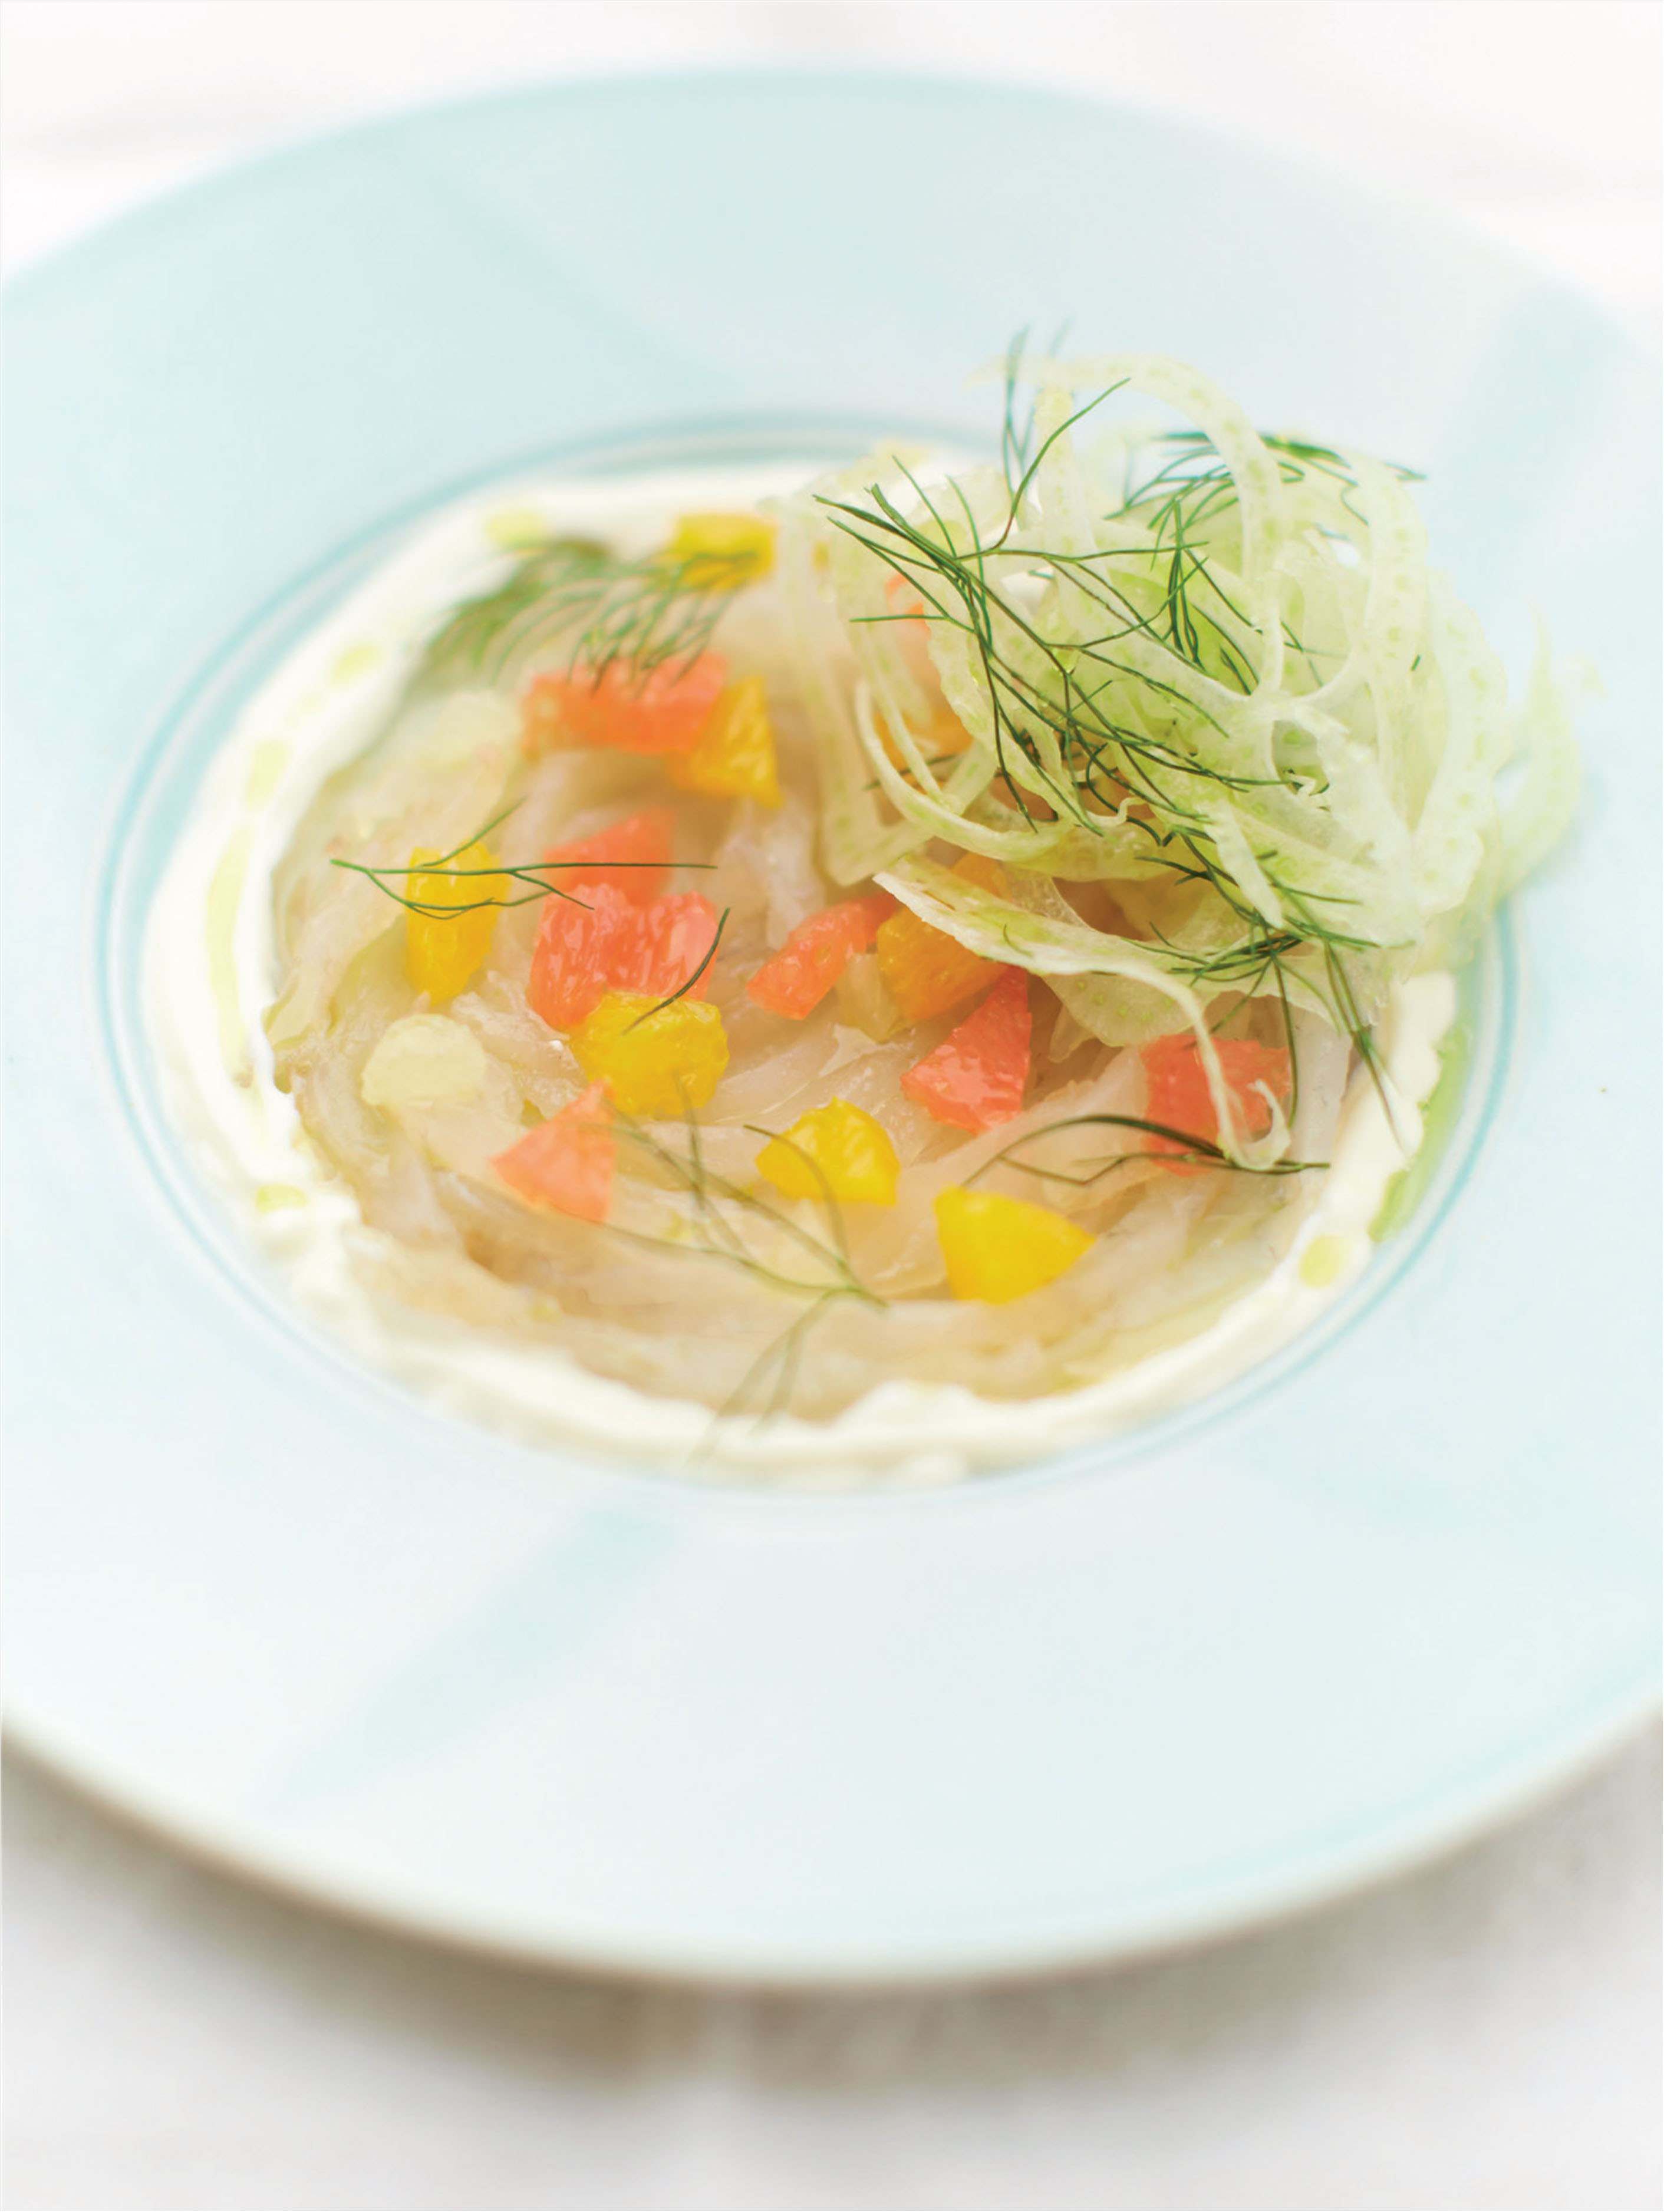 Cured wild bream with fennel, citrus fruit and pastis soured cream